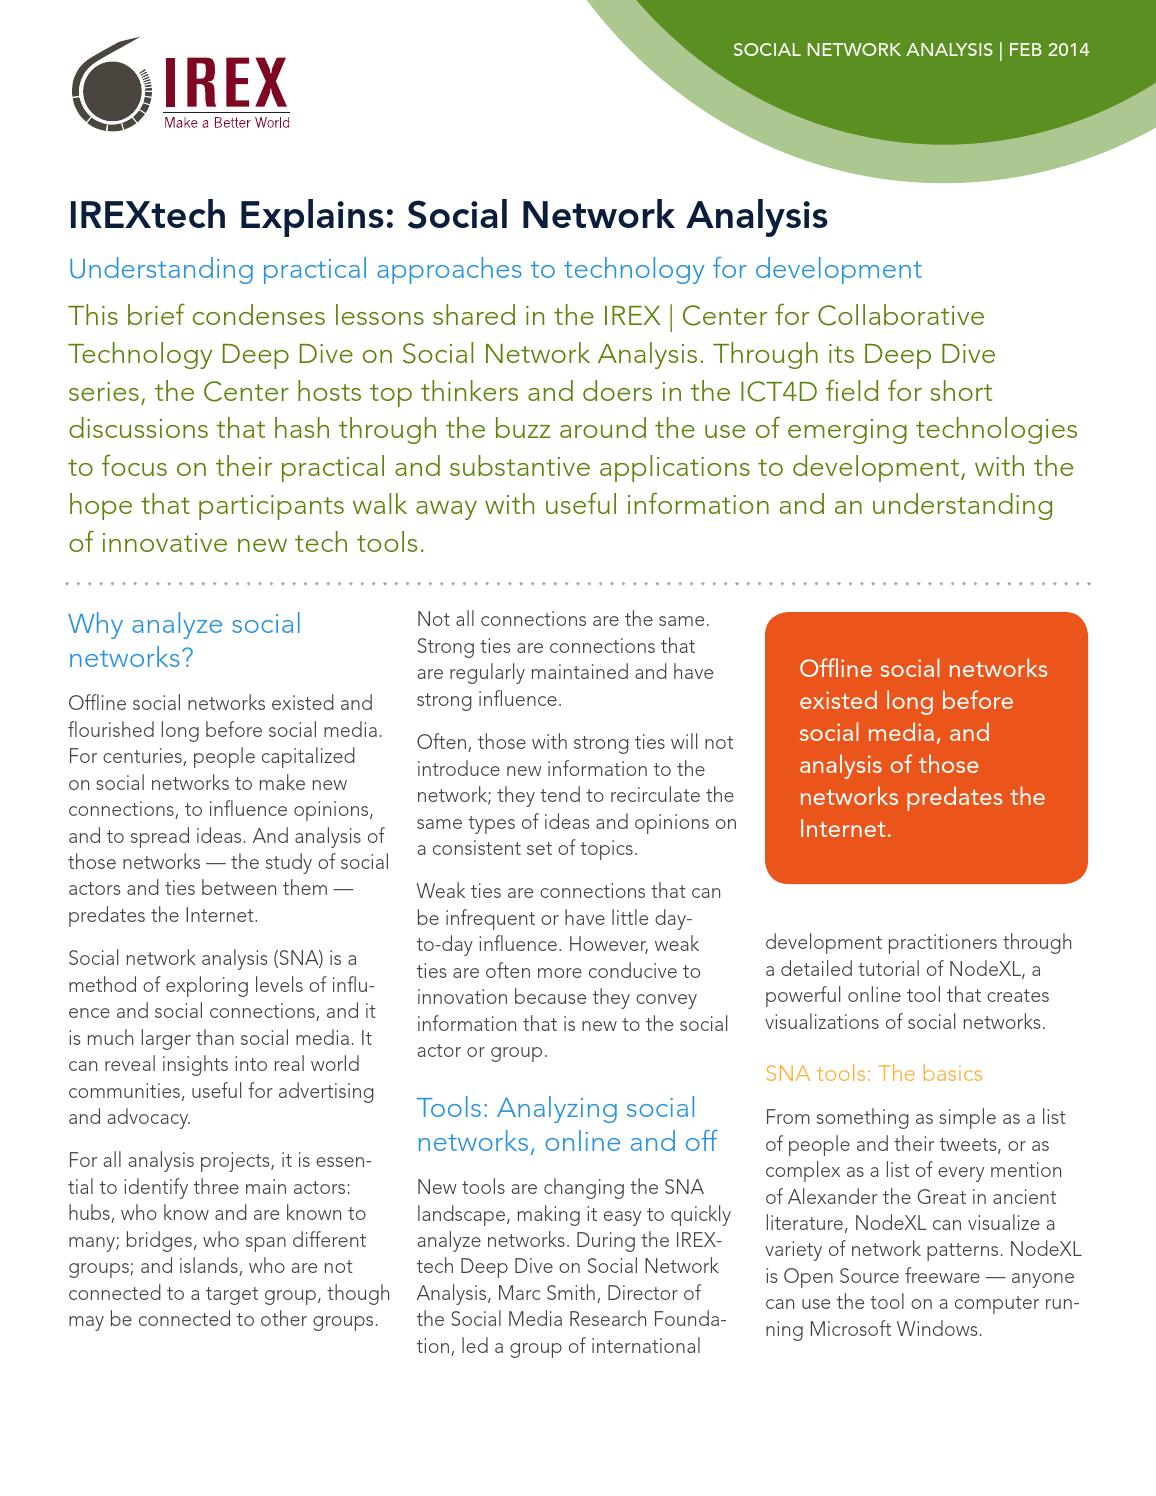 Social Network Analysis and Development by IREX TECH - issuu